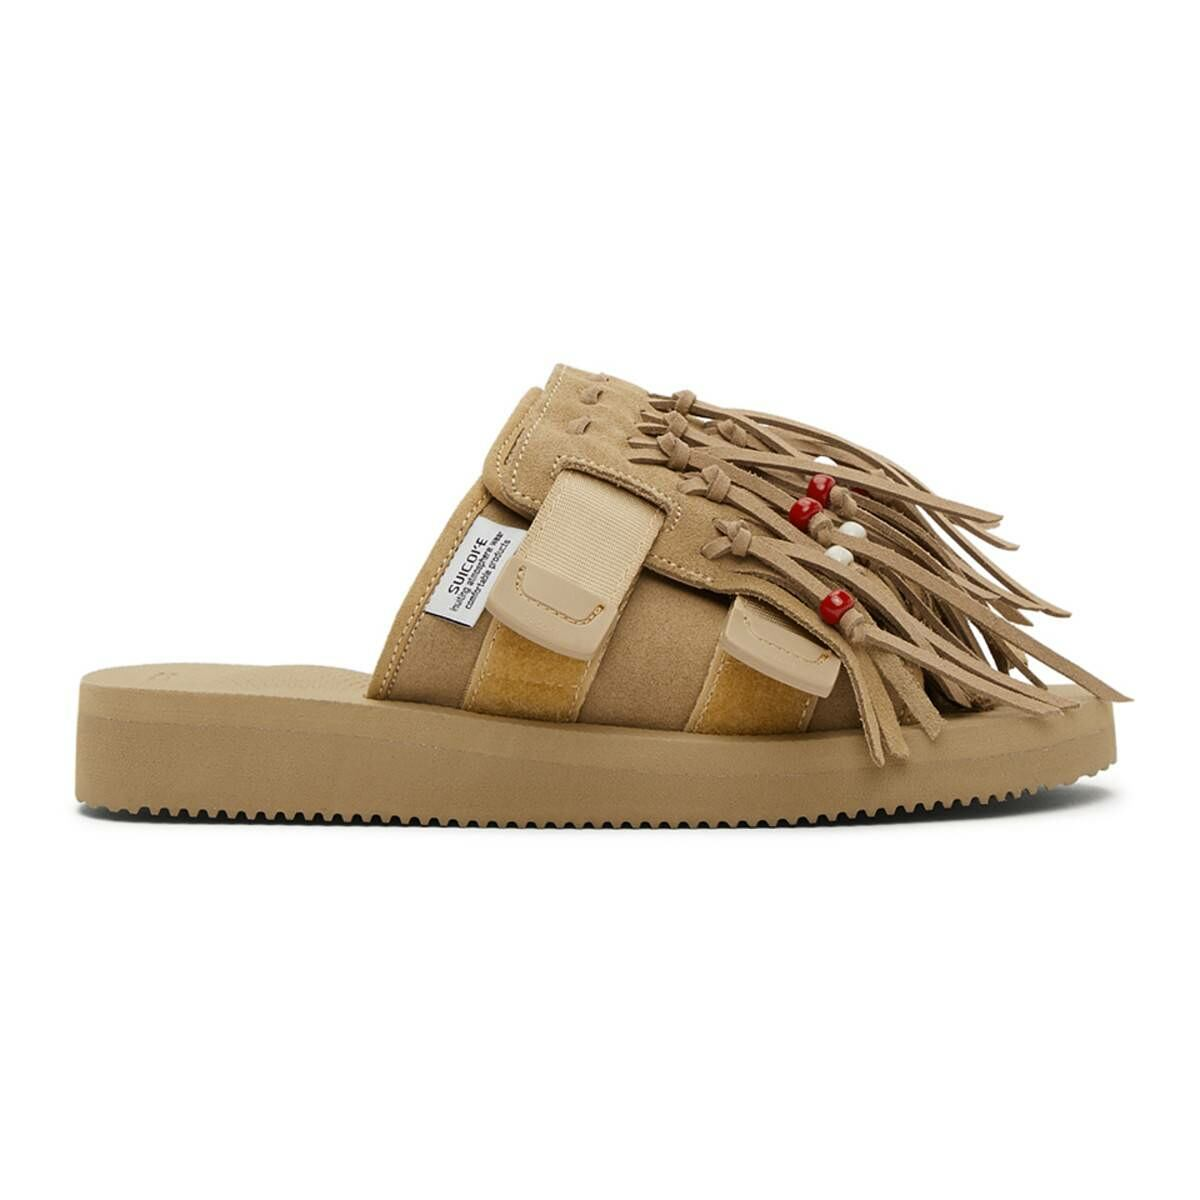 Suicoke Beige HOTO Scab Sandals Ssense USA MEN Men SHOES Mens SANDALS